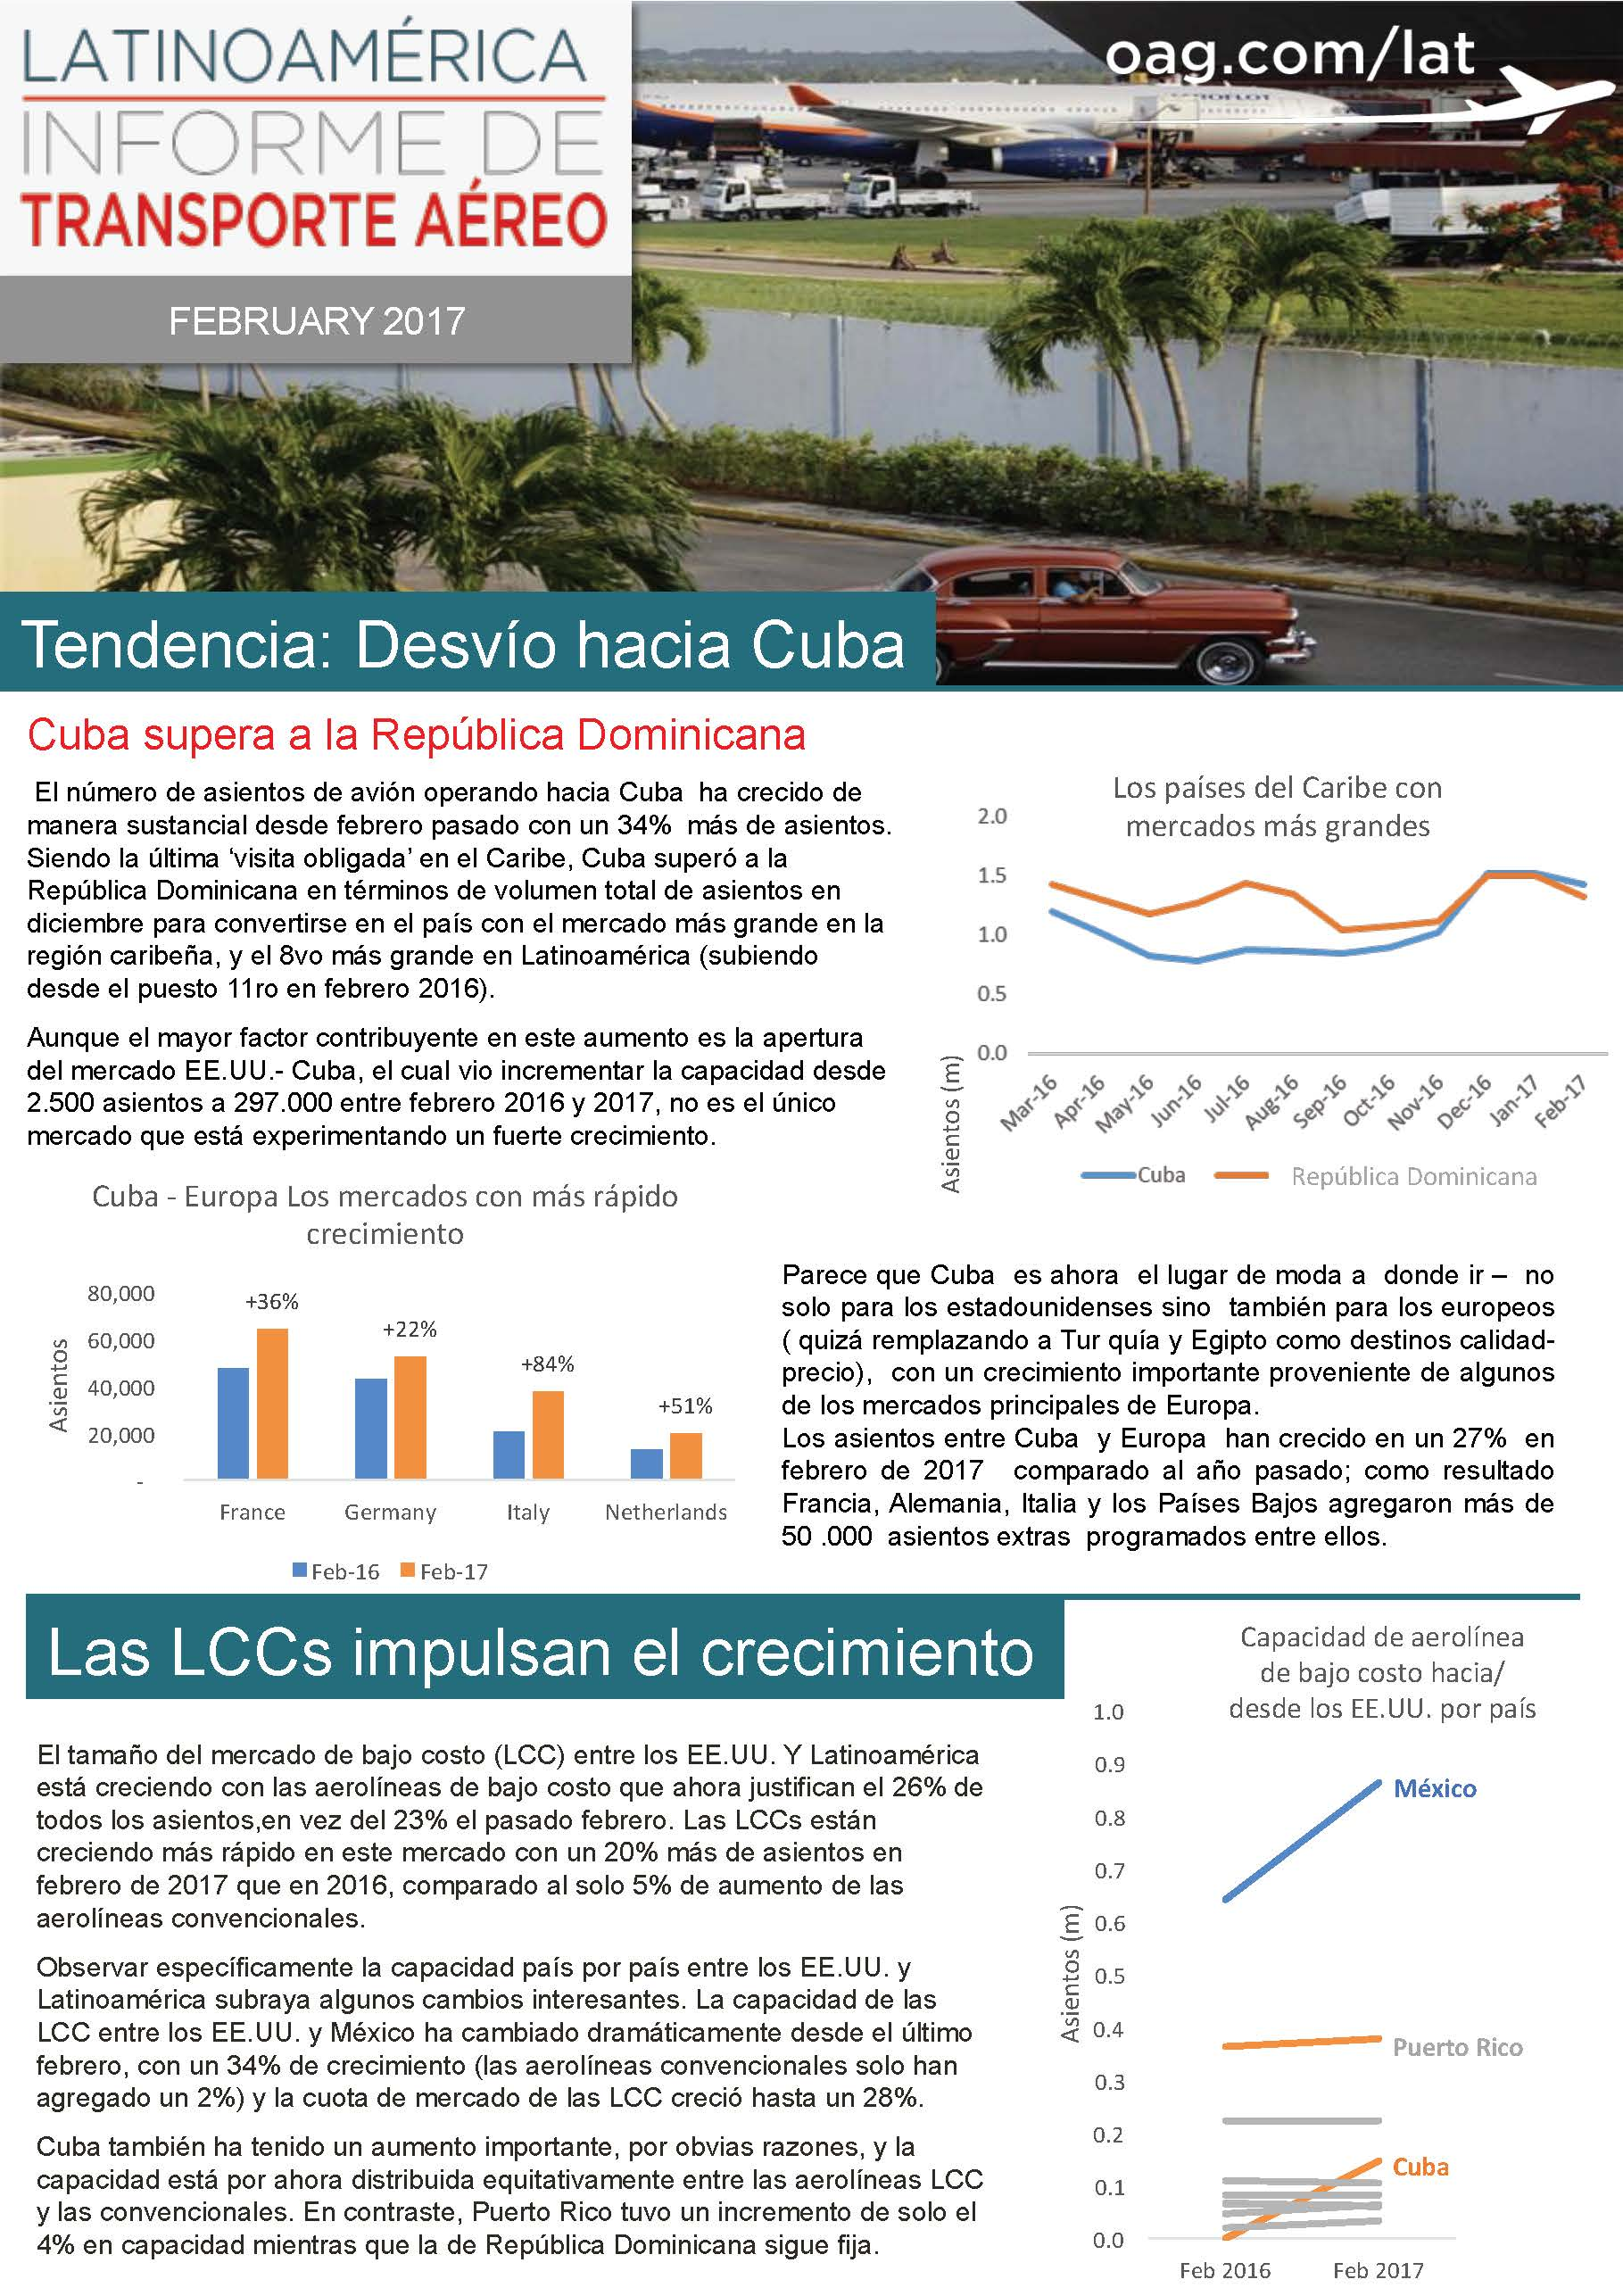 LATAM_Air_Travel_Report_Feb 2017 SP_Page_1.jpg